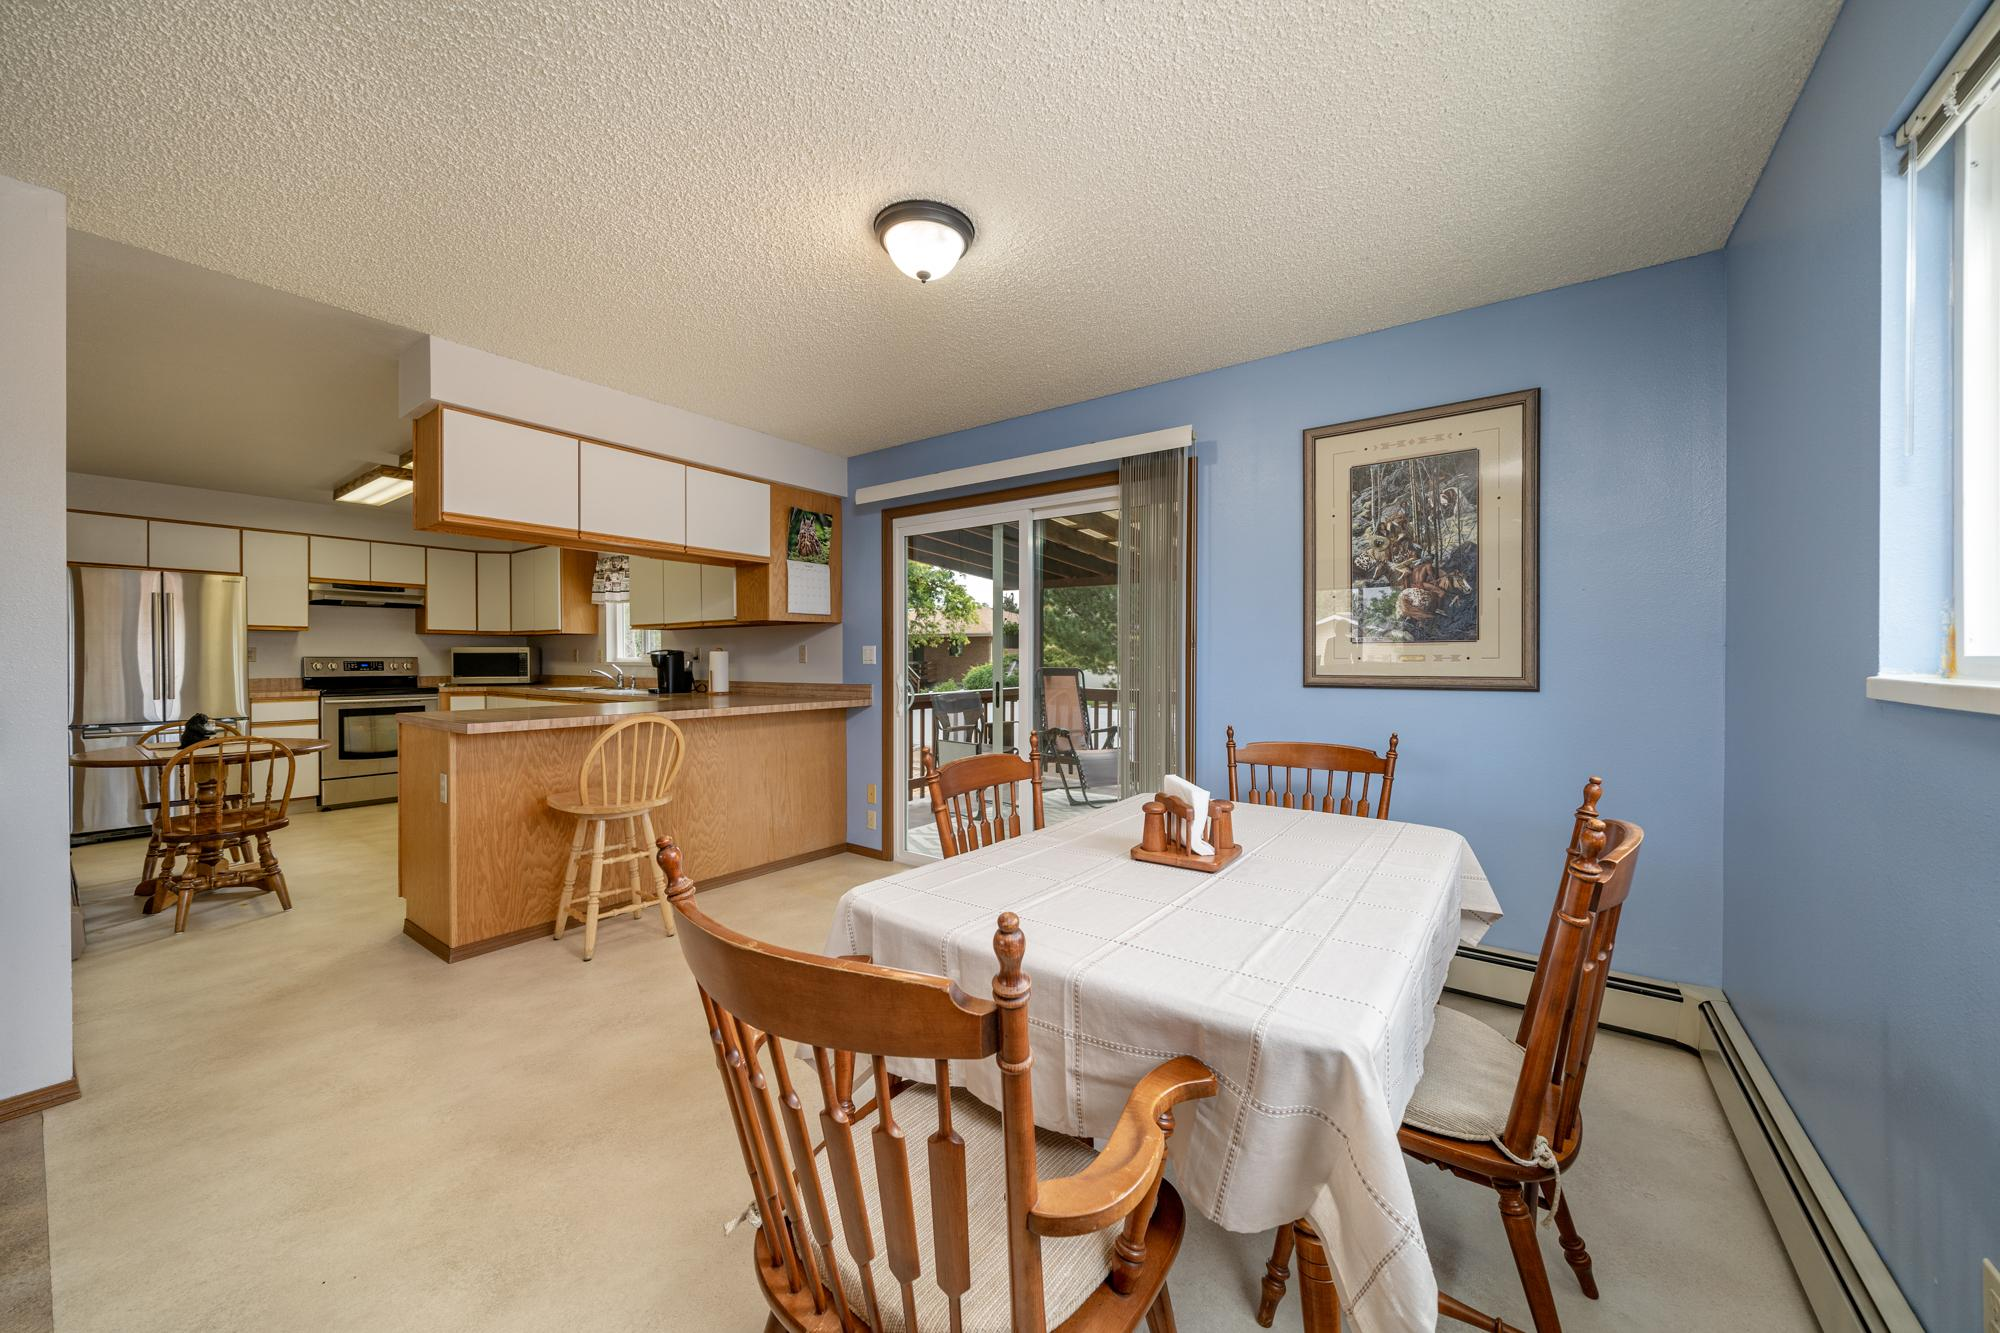 Dining Room with Sliding Glass Doors - 1311 Manchester Dr Montrose, CO 81401 - Atha Team Realty Agents